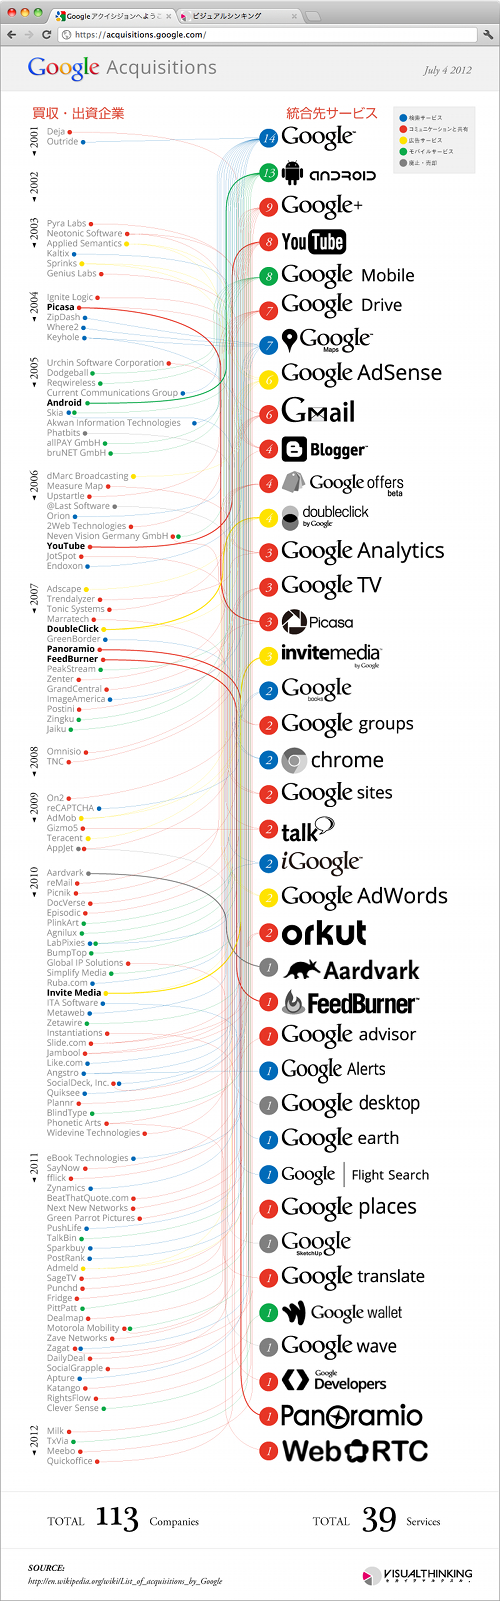 google-acquisitions-2001-2012